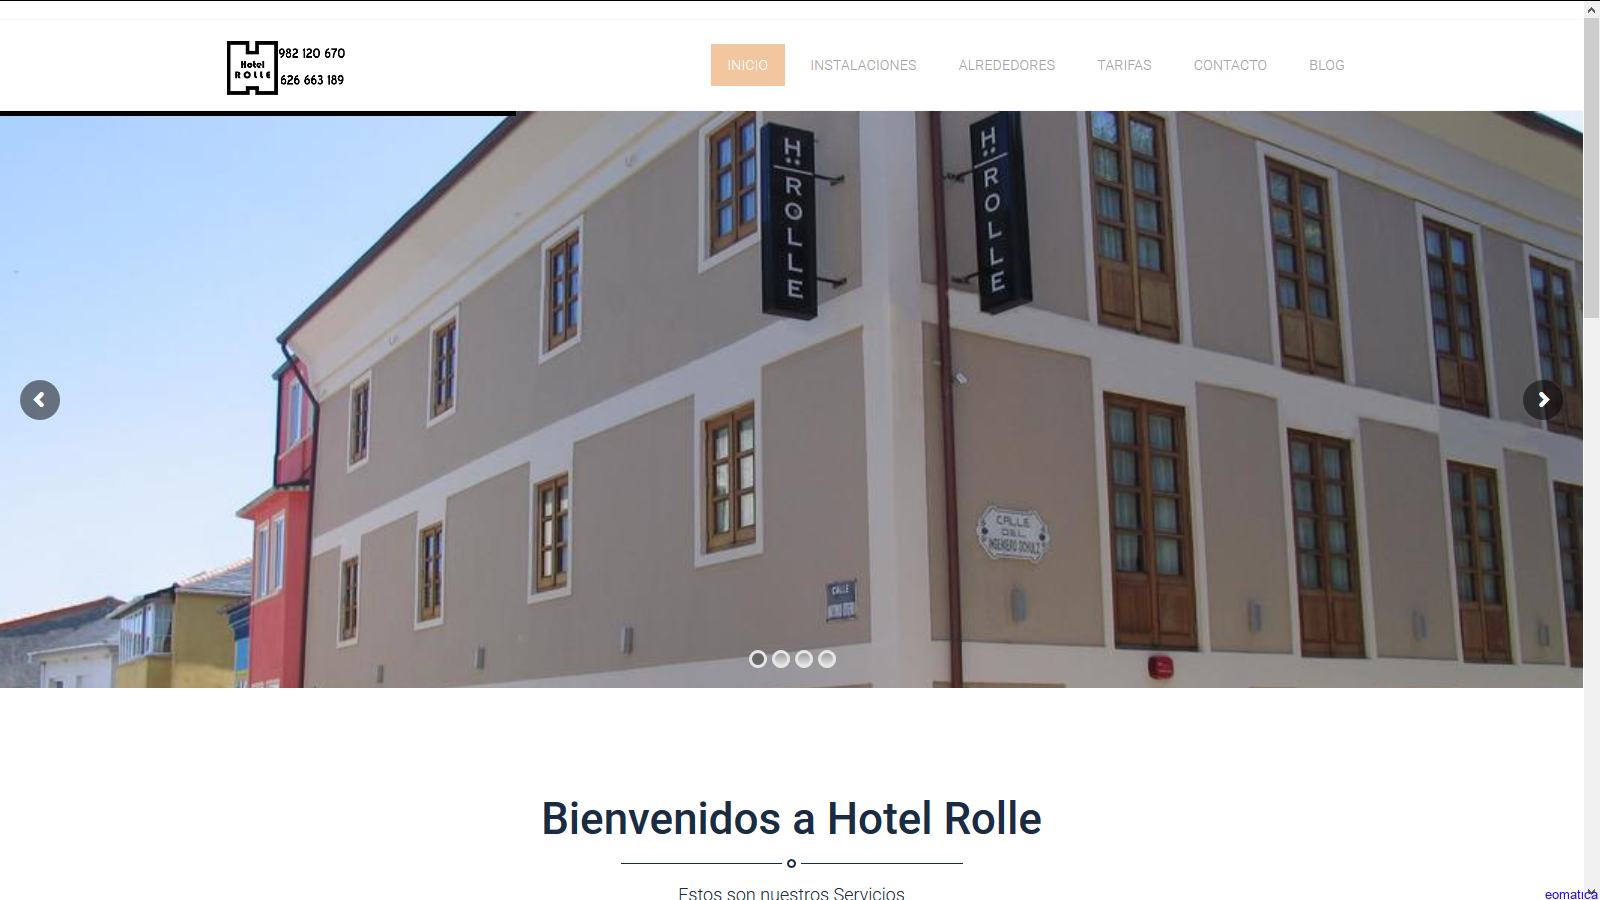 hotelrolle_1540096462.png